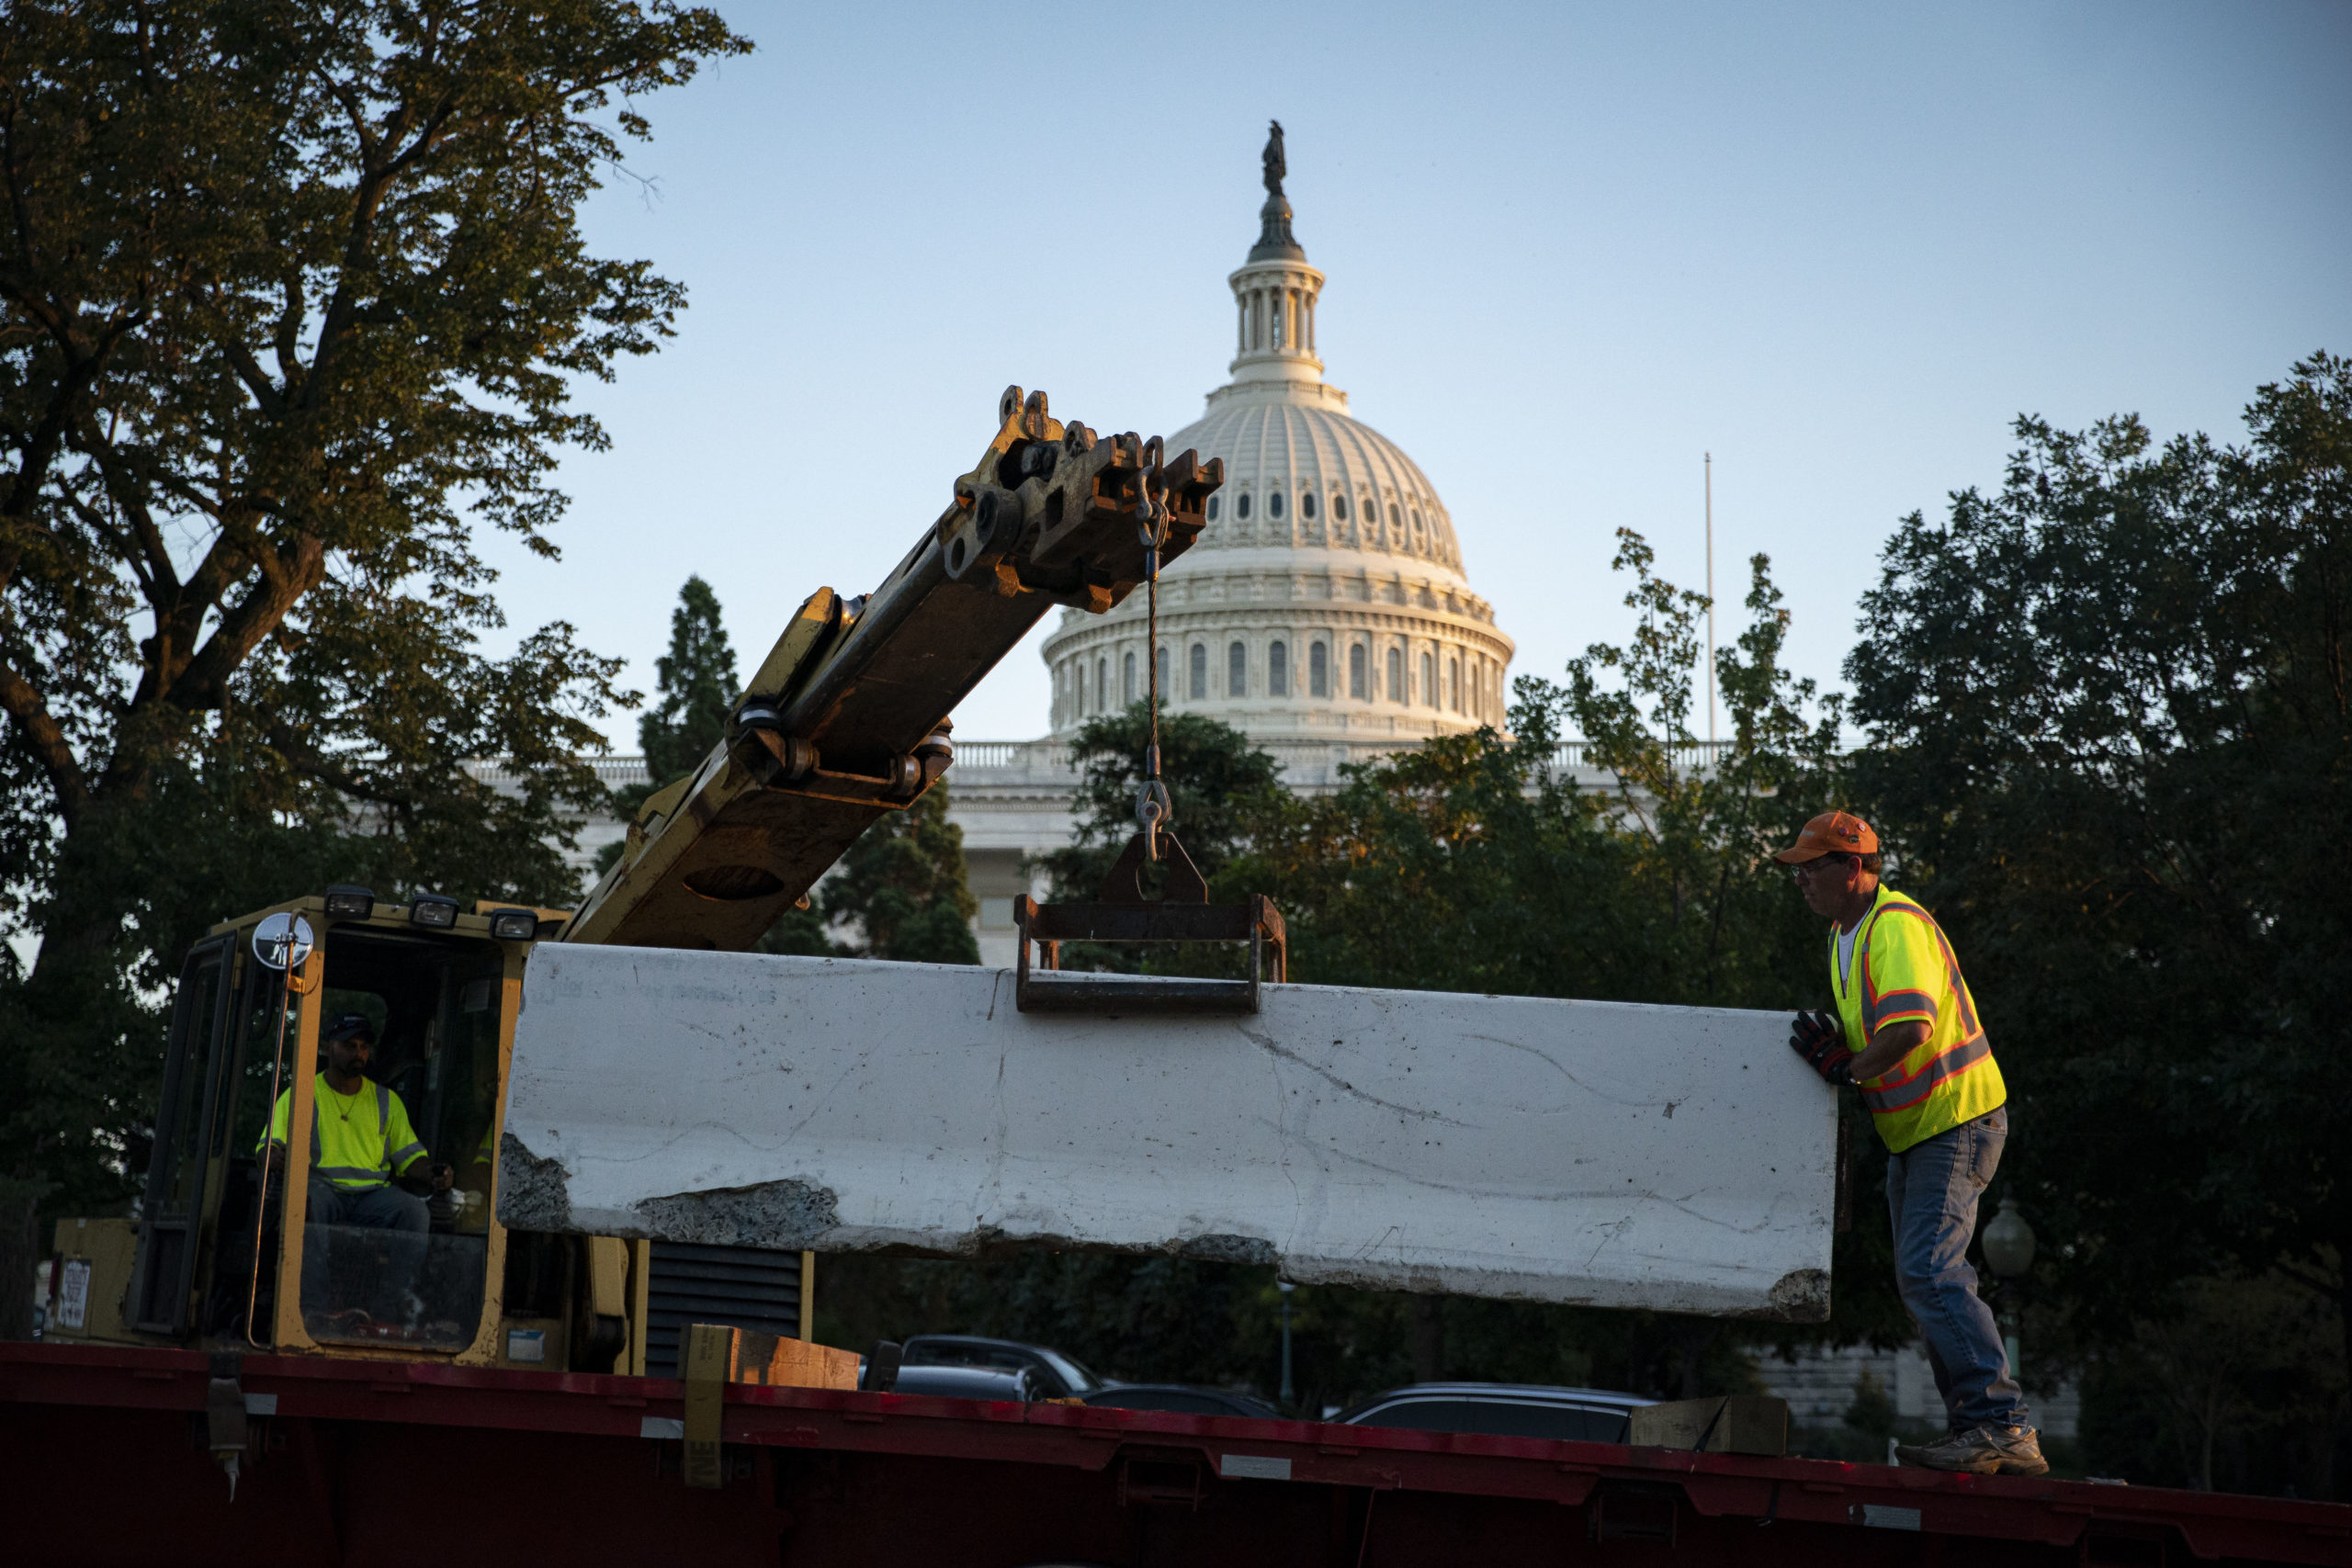 Workers remove security fencing surrounding the U.S. Capitol on Sunday. (Al Drago/Getty Images)